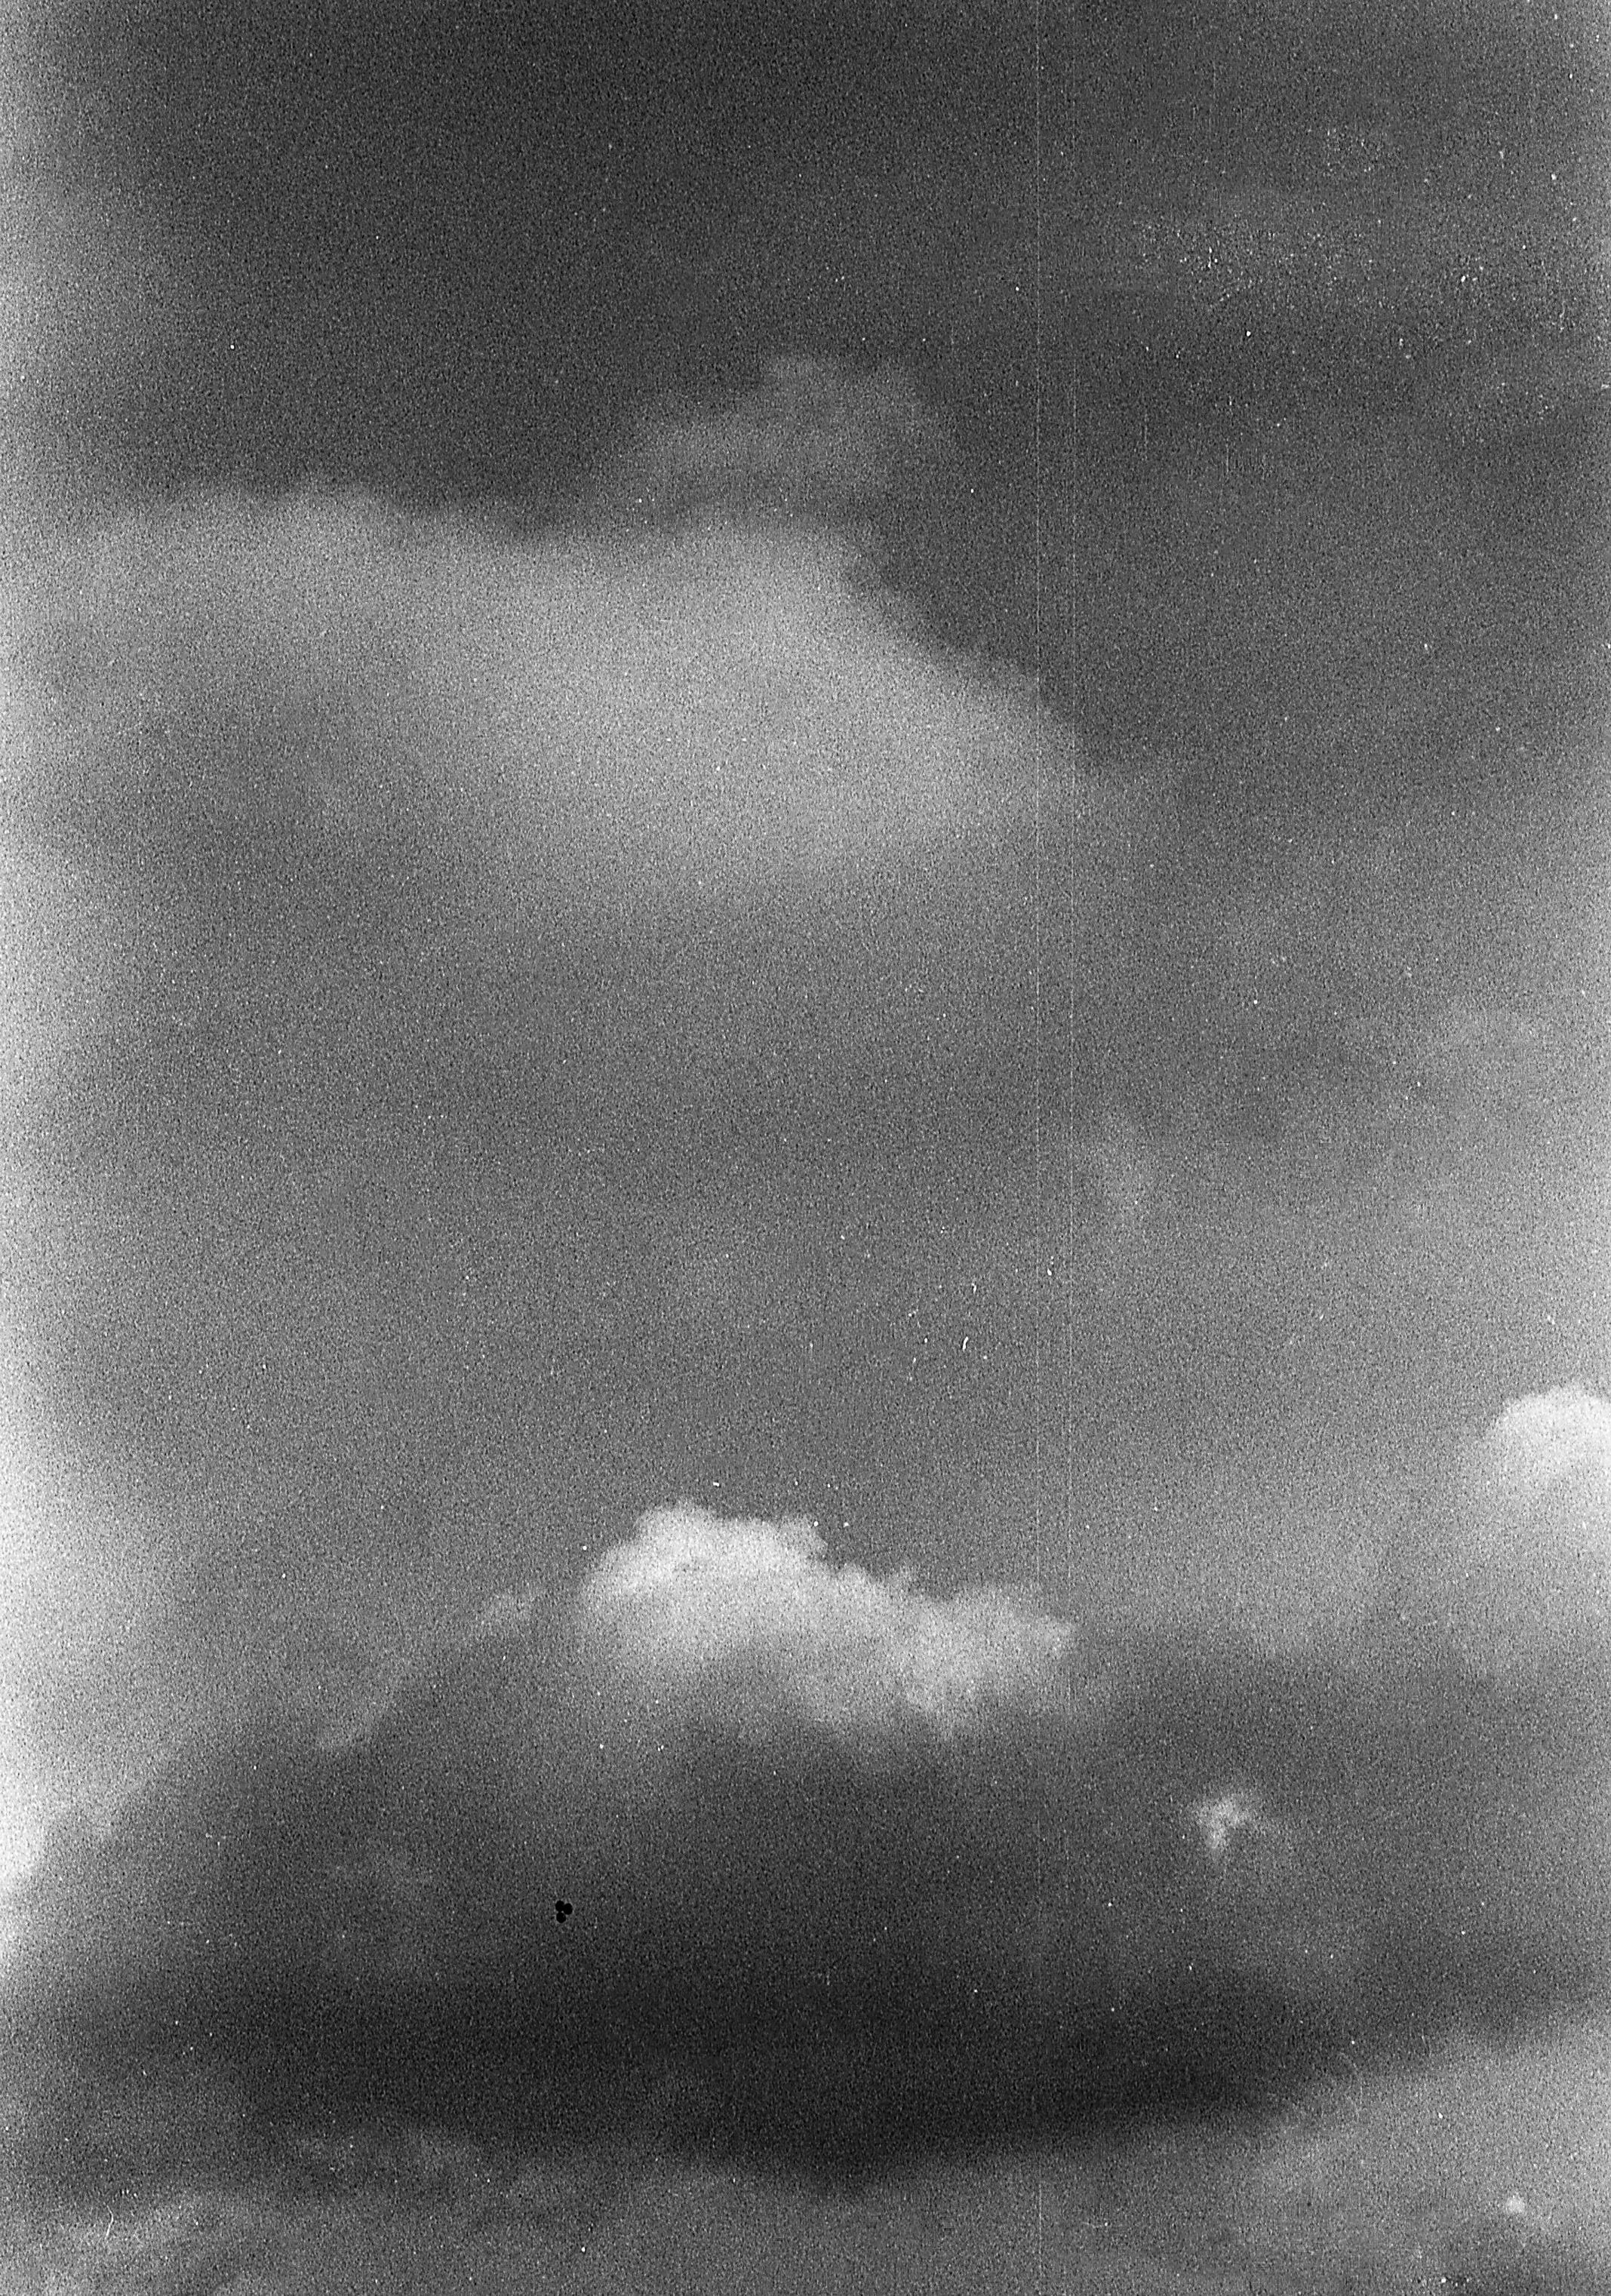 Greyscale photo of cloudy sky with old-photo noise filter.